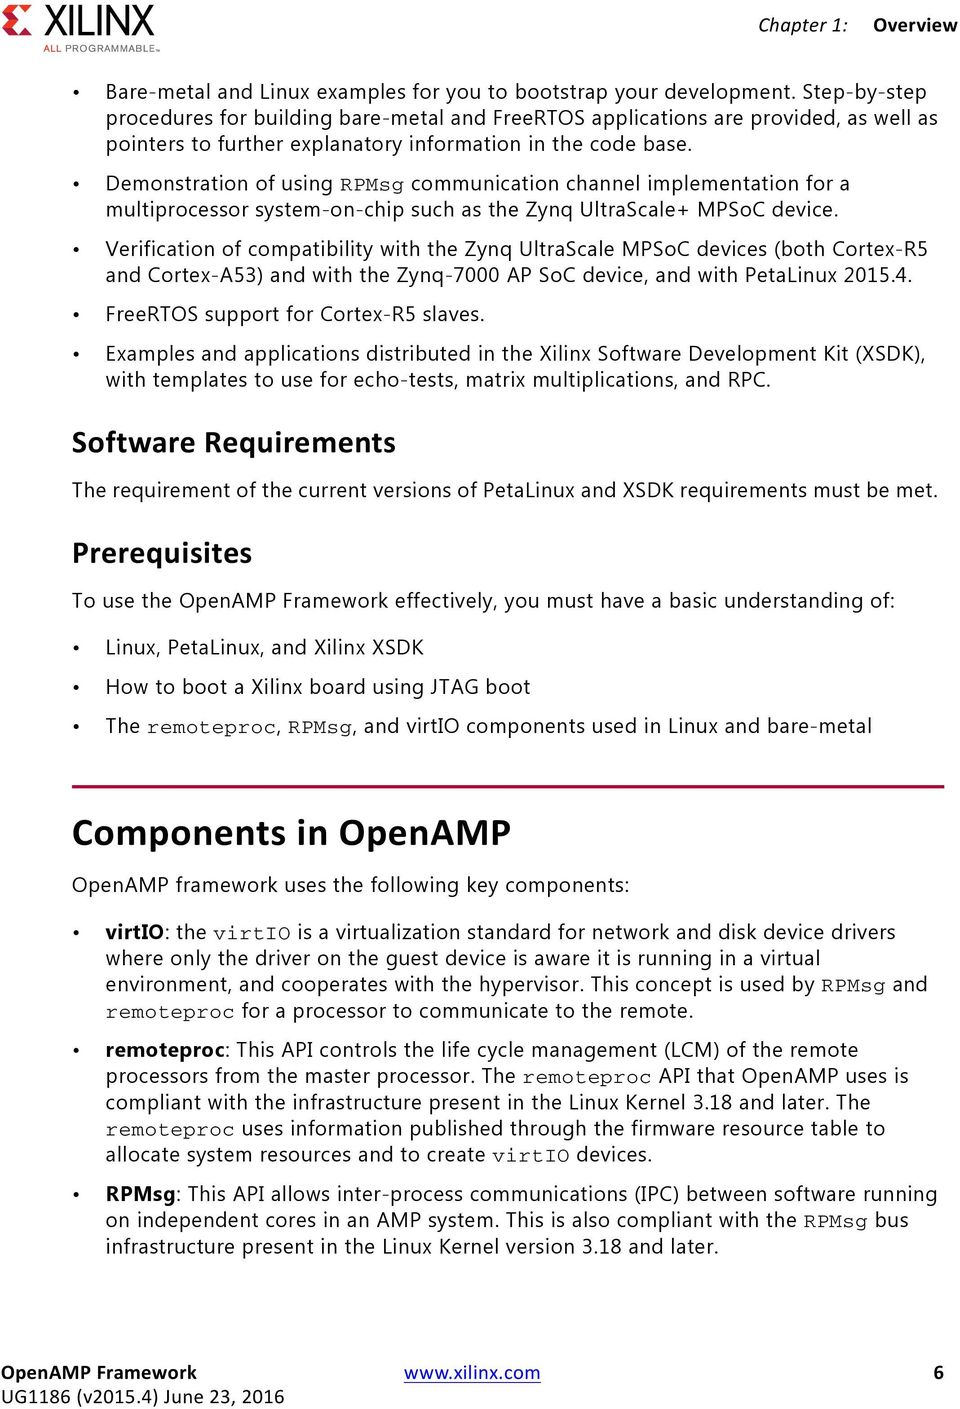 OpenAMP Framework for Zynq Devices - PDF